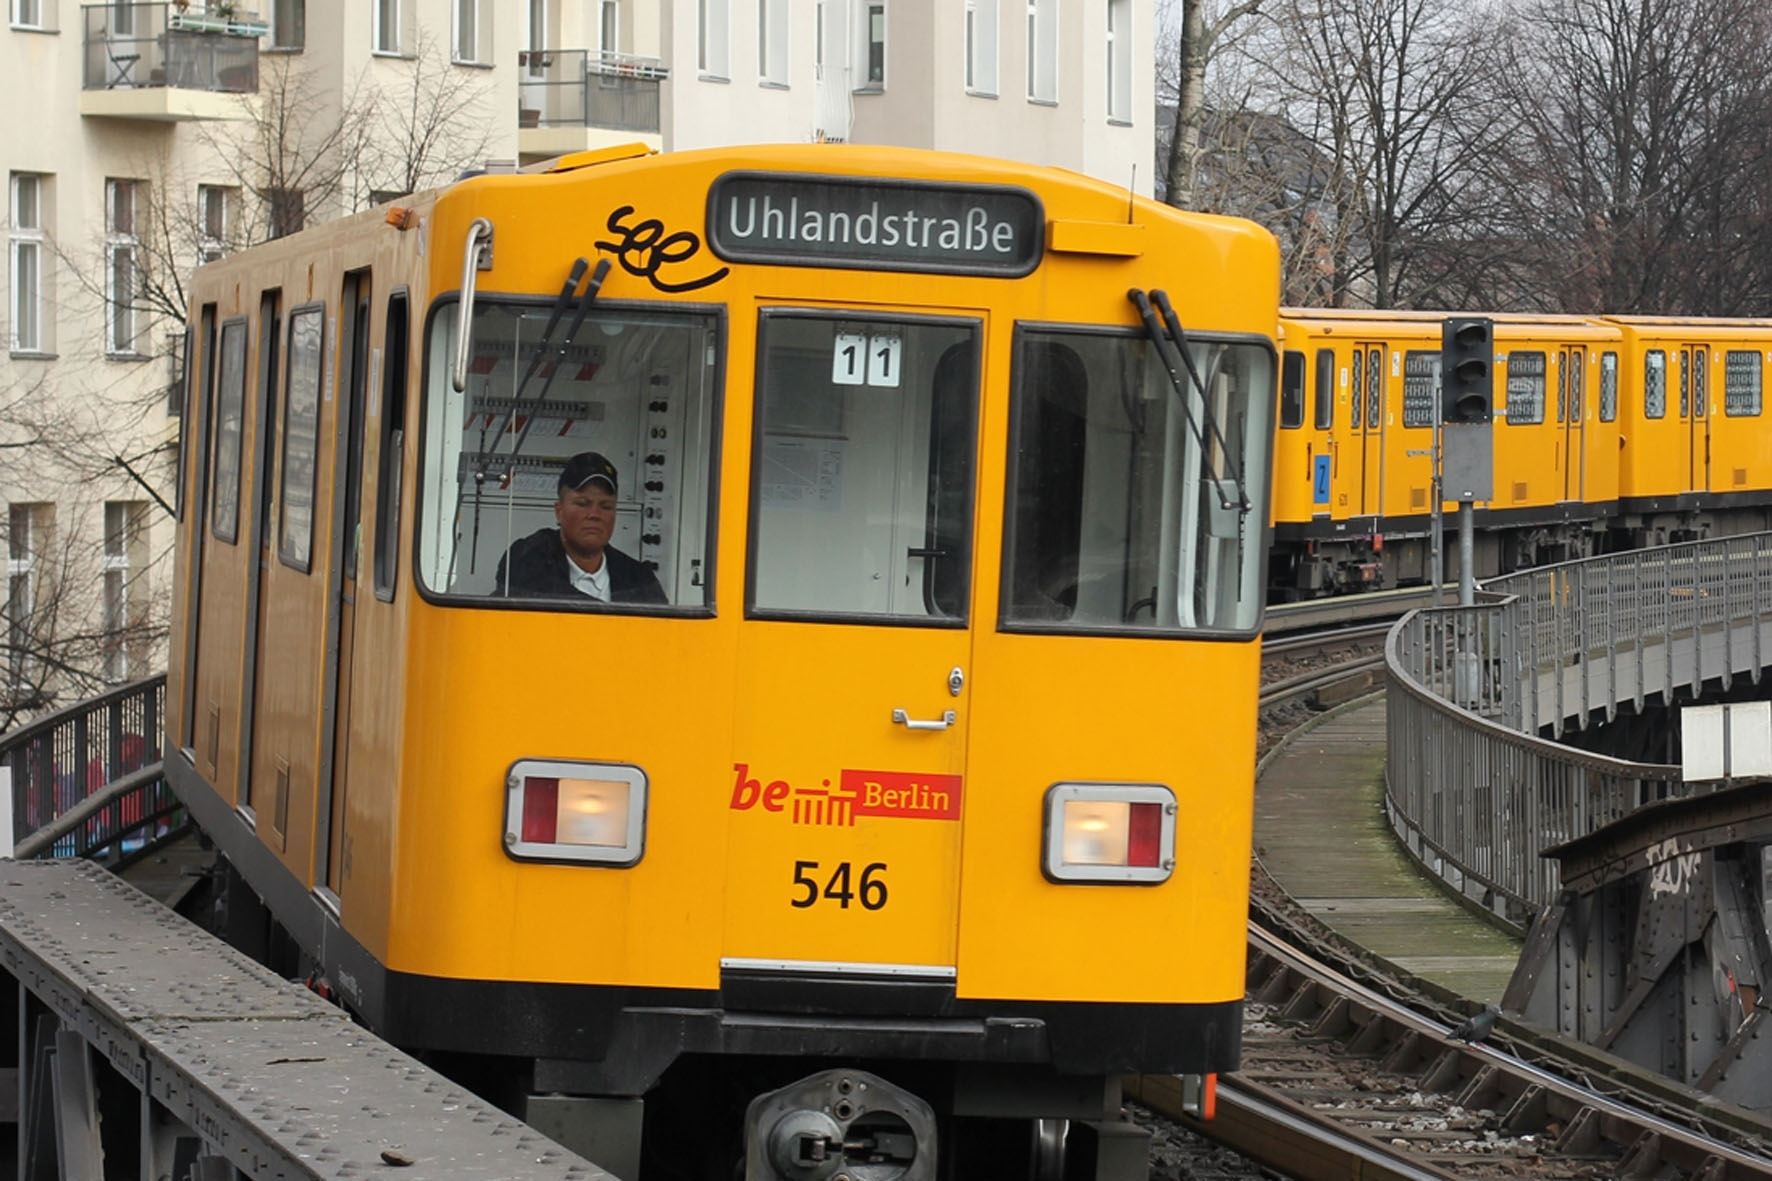 Getting Caught Without A Valid Ticket On Berlin Public Transport And pertaining to Berlin Ticket Bahn